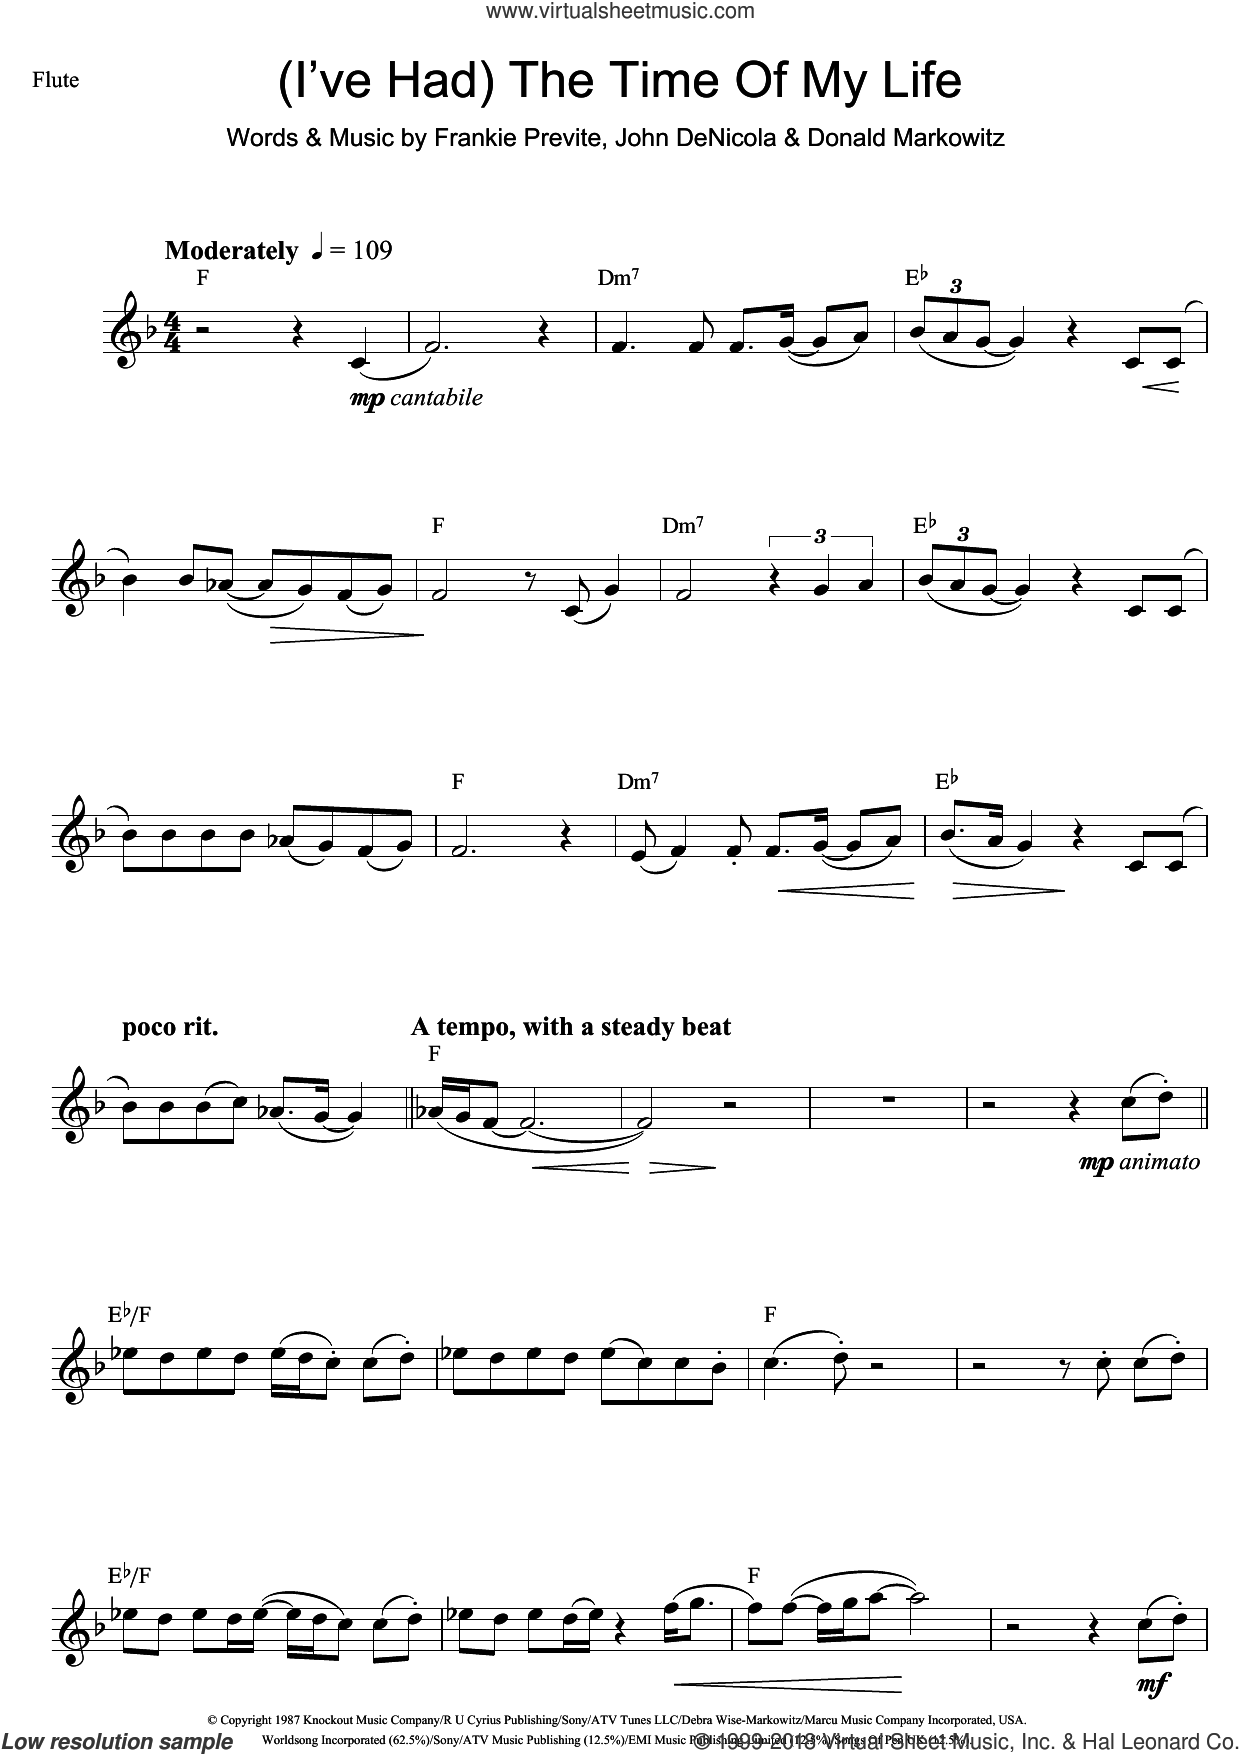 (I've Had) The Time Of My Life sheet music for flute solo by Bill Medley and Jennifer Warnes, intermediate flute. Score Image Preview.